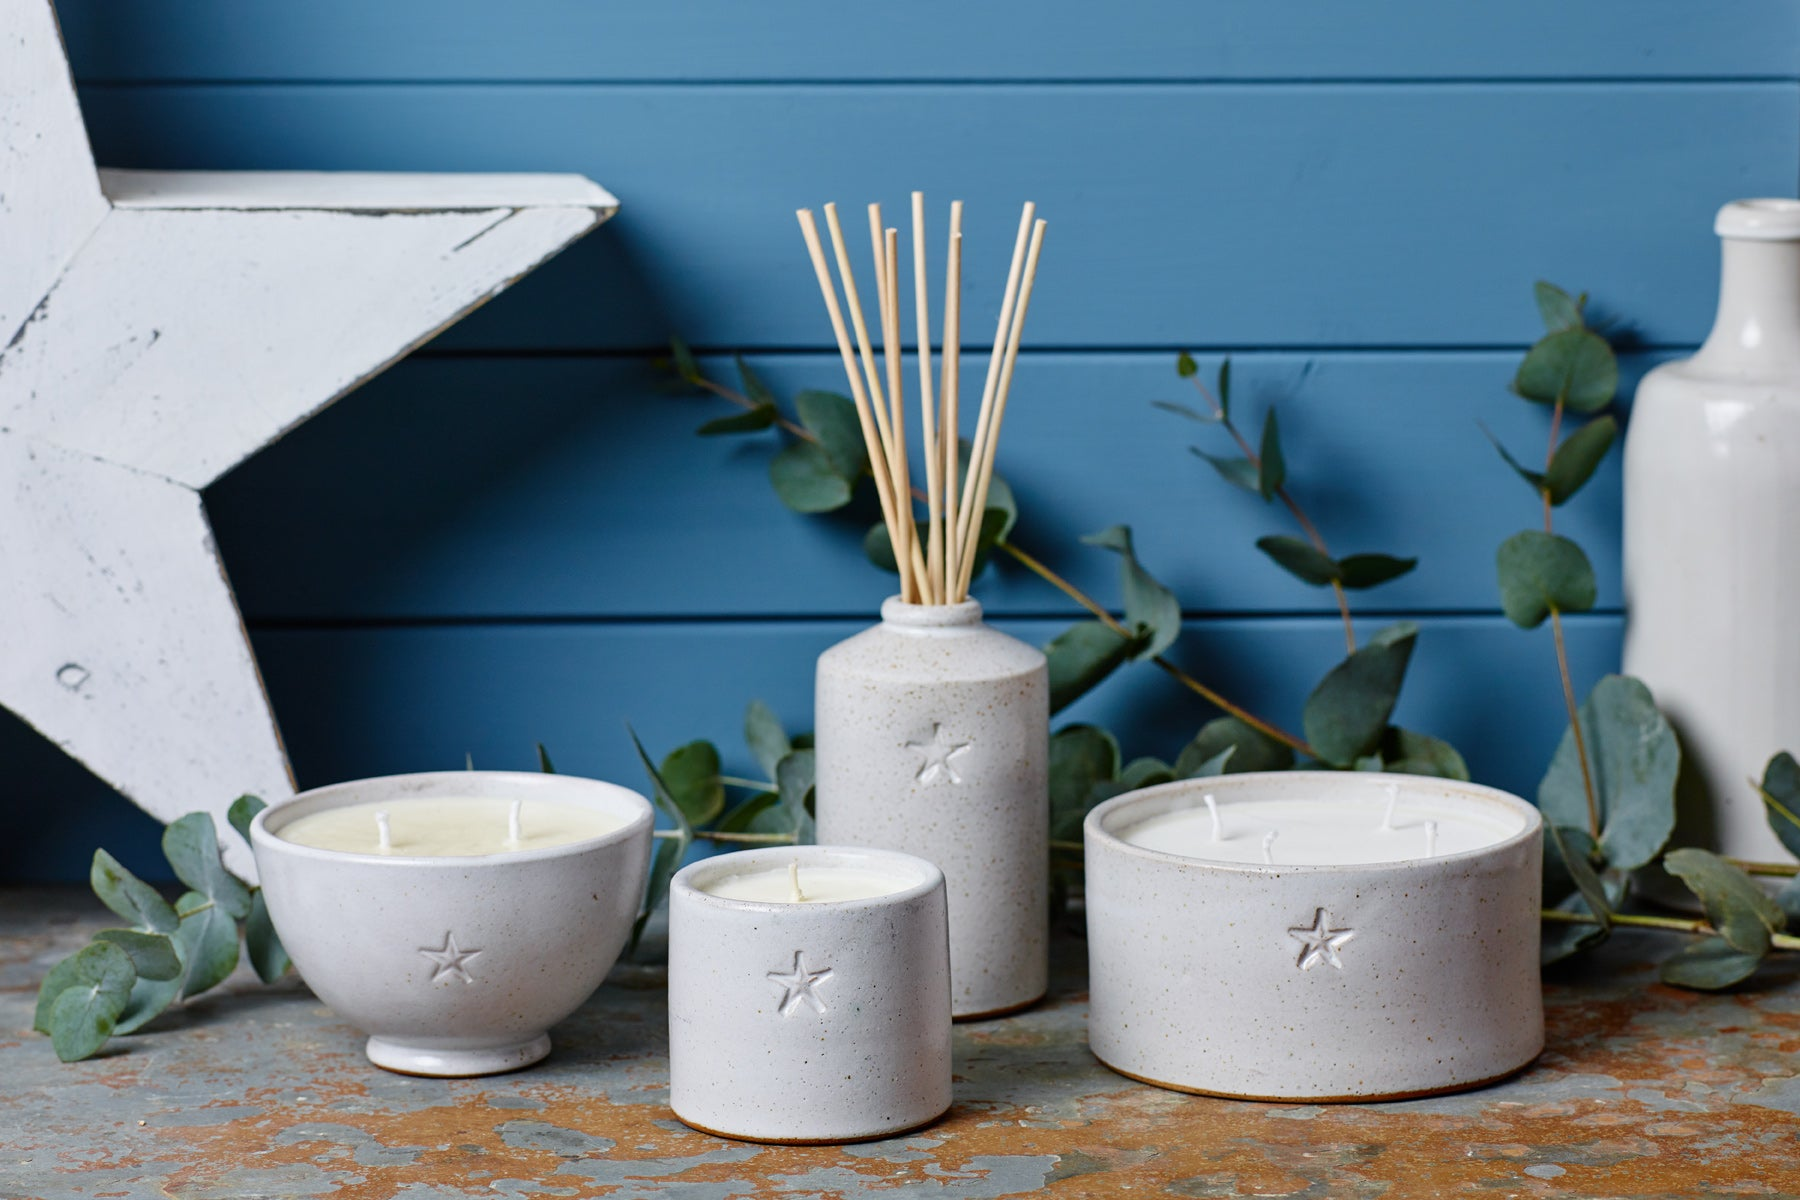 the Kiln Collection by Parkminster - Hand trown ceramic containers filled with beautiful and bespoke scented candles and diffusers